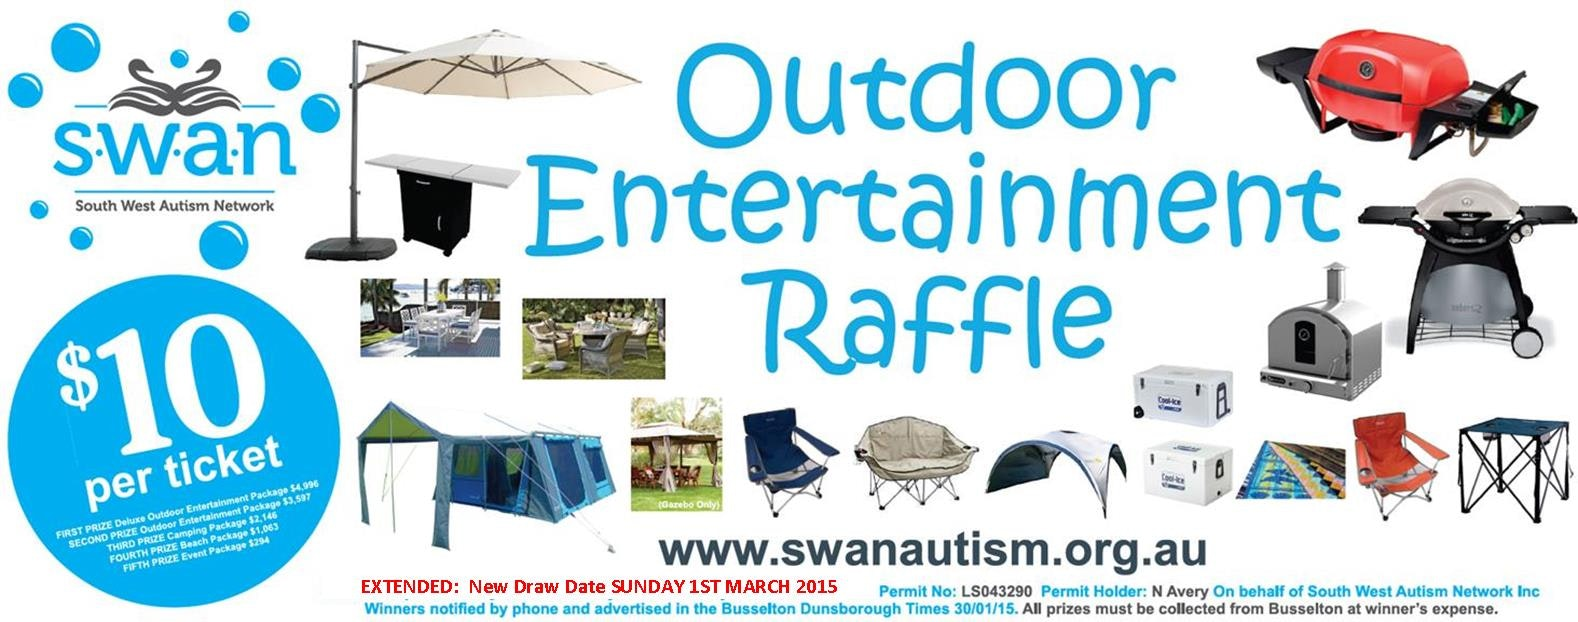 Picture of prizes for SWAN Outdoor Entertainment Raffle